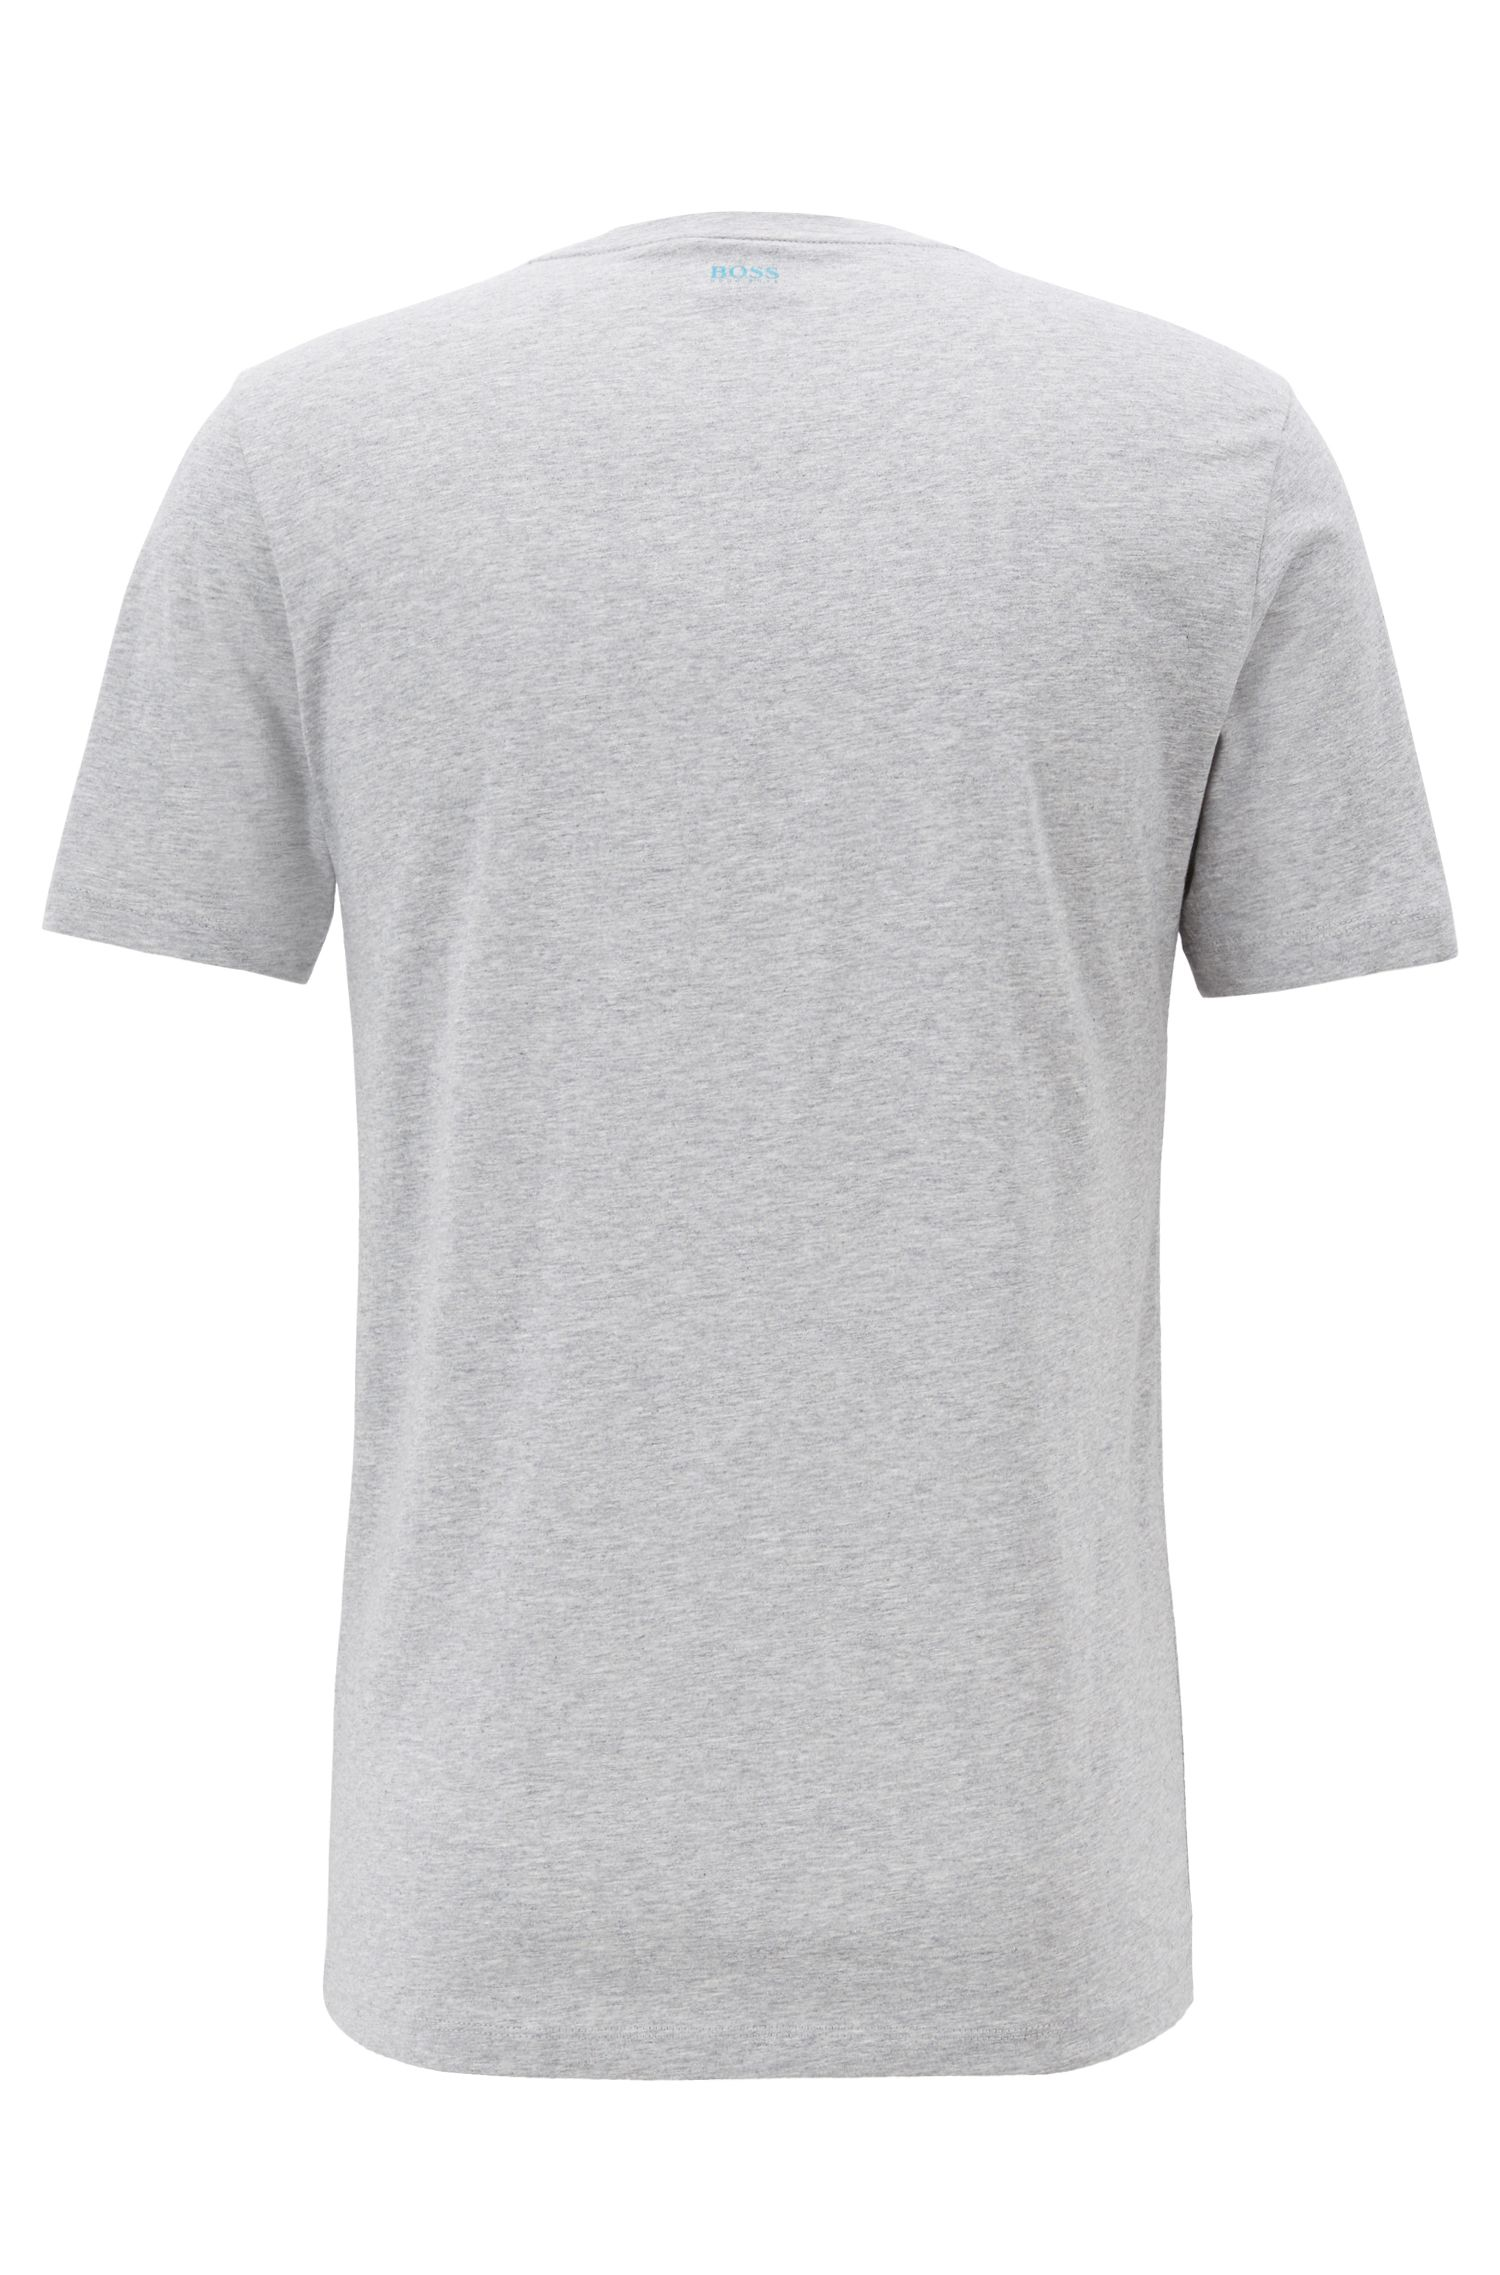 Crew-neck cotton T-shirt with photographic print, Grey